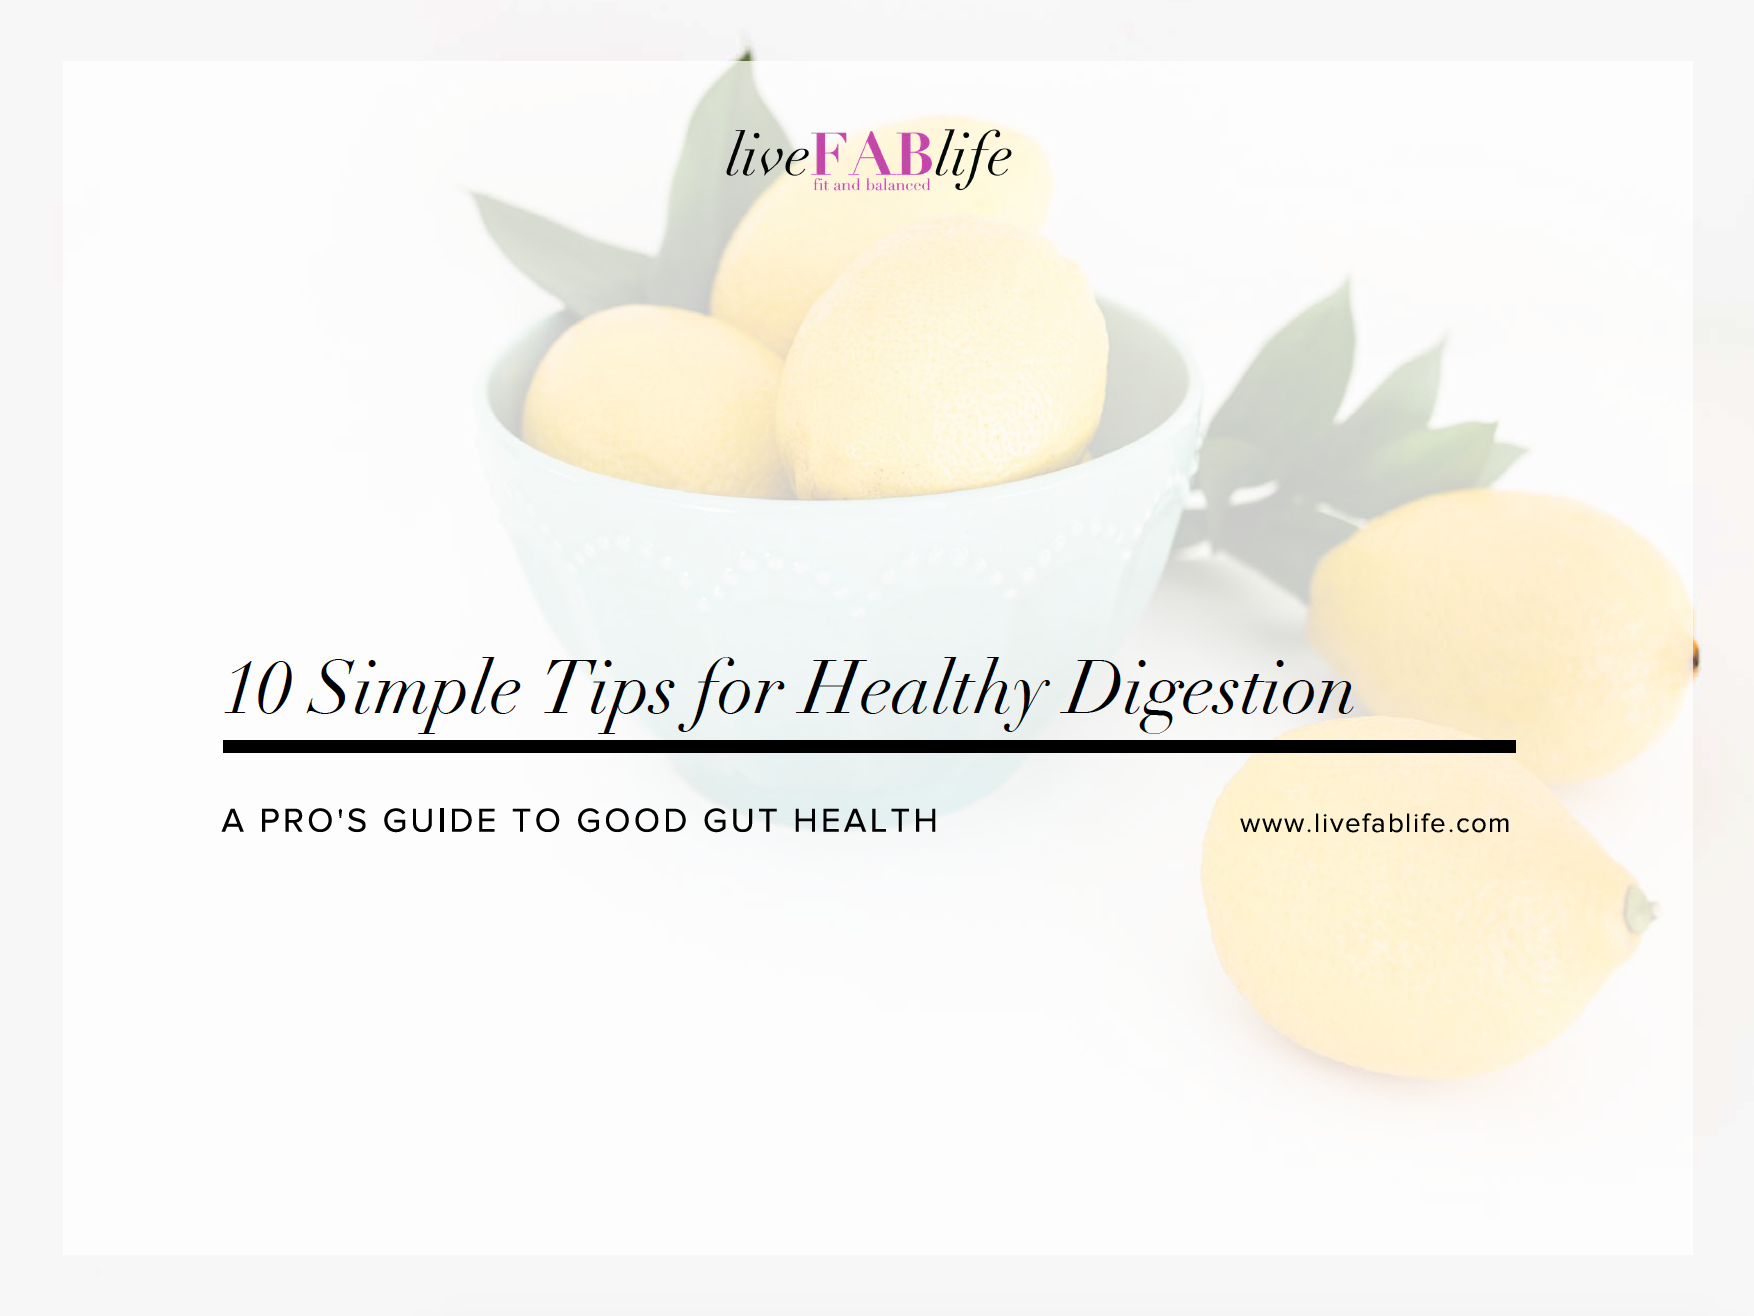 10 Simple Tips for Healthy Digestion